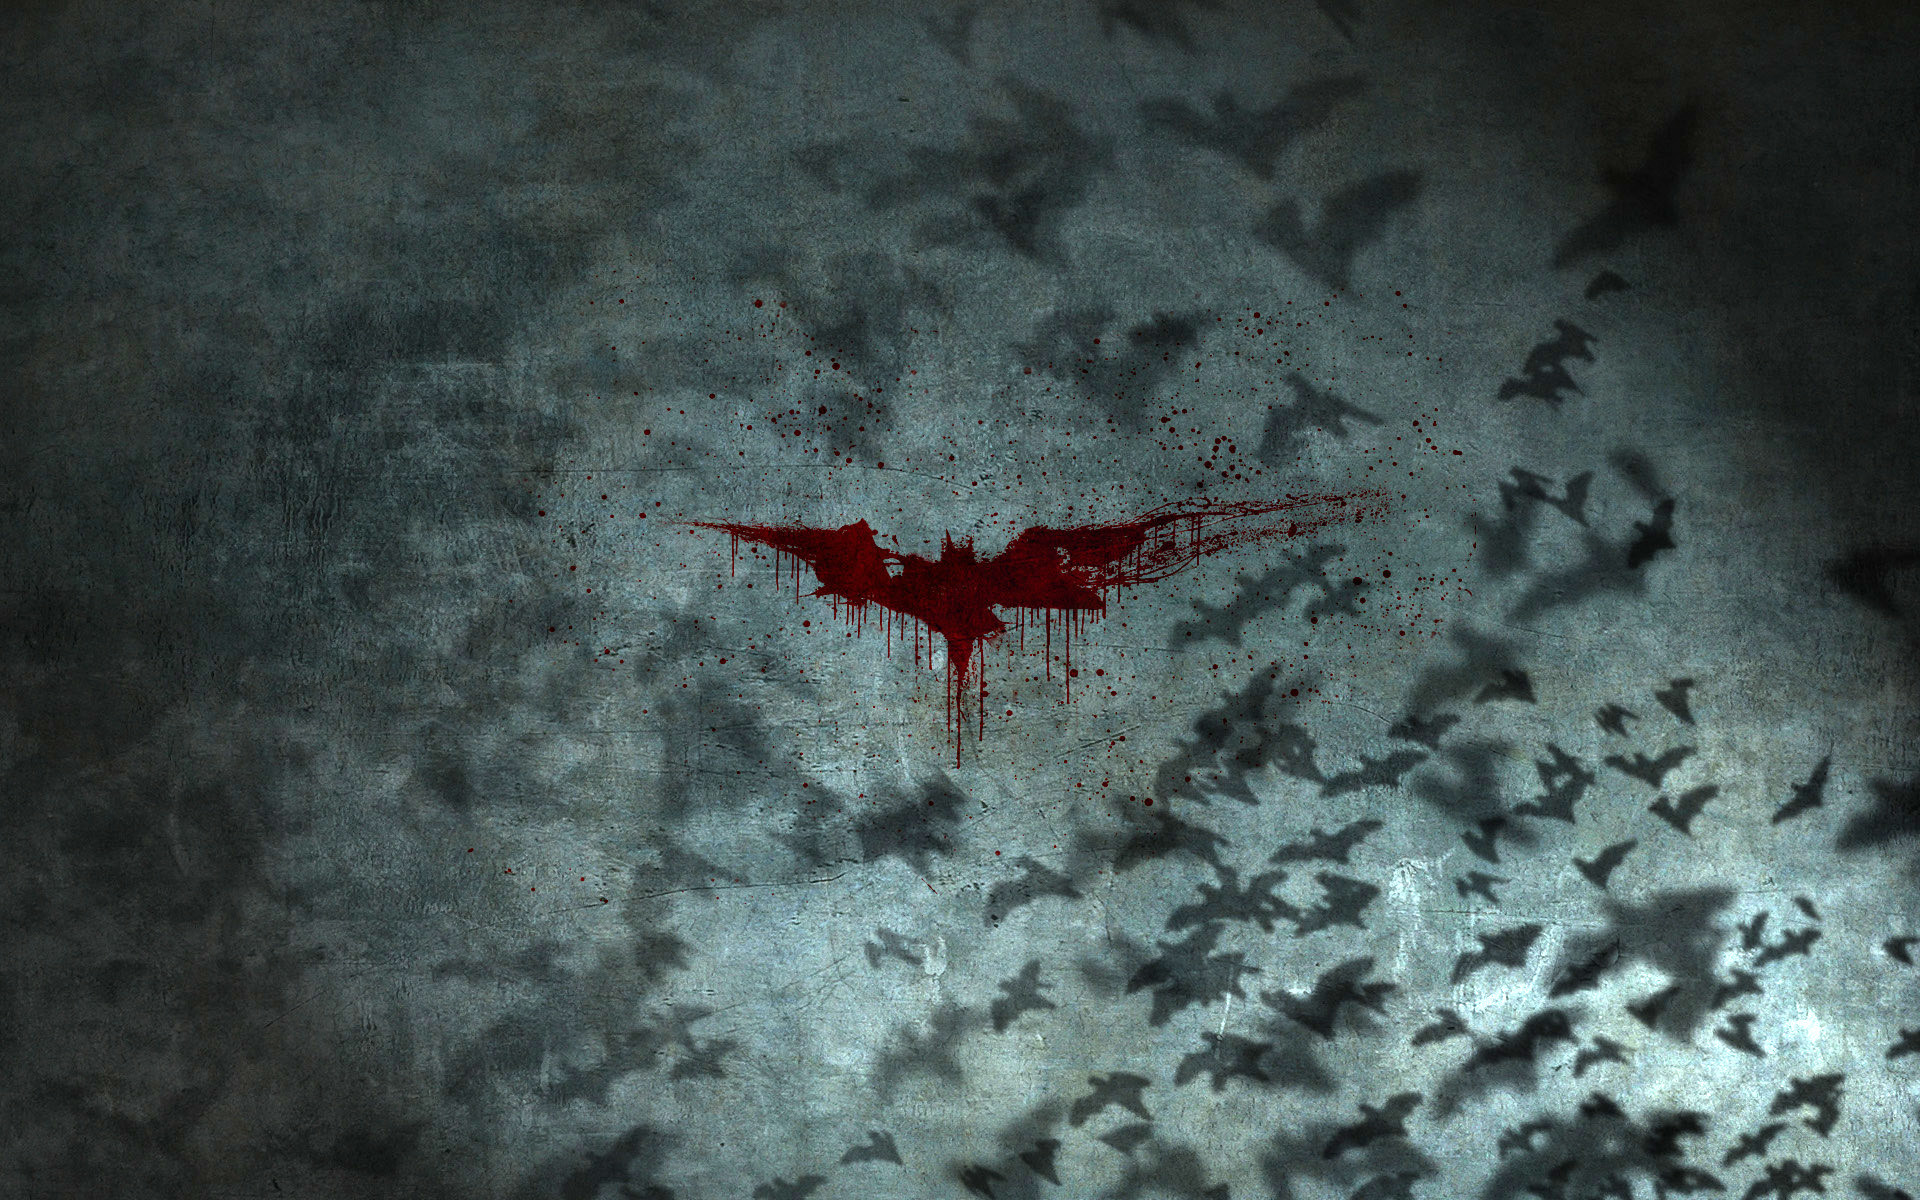 1920x1200 Clip Arts Related To : Batman - logo wallpaper - The art of wallpapers